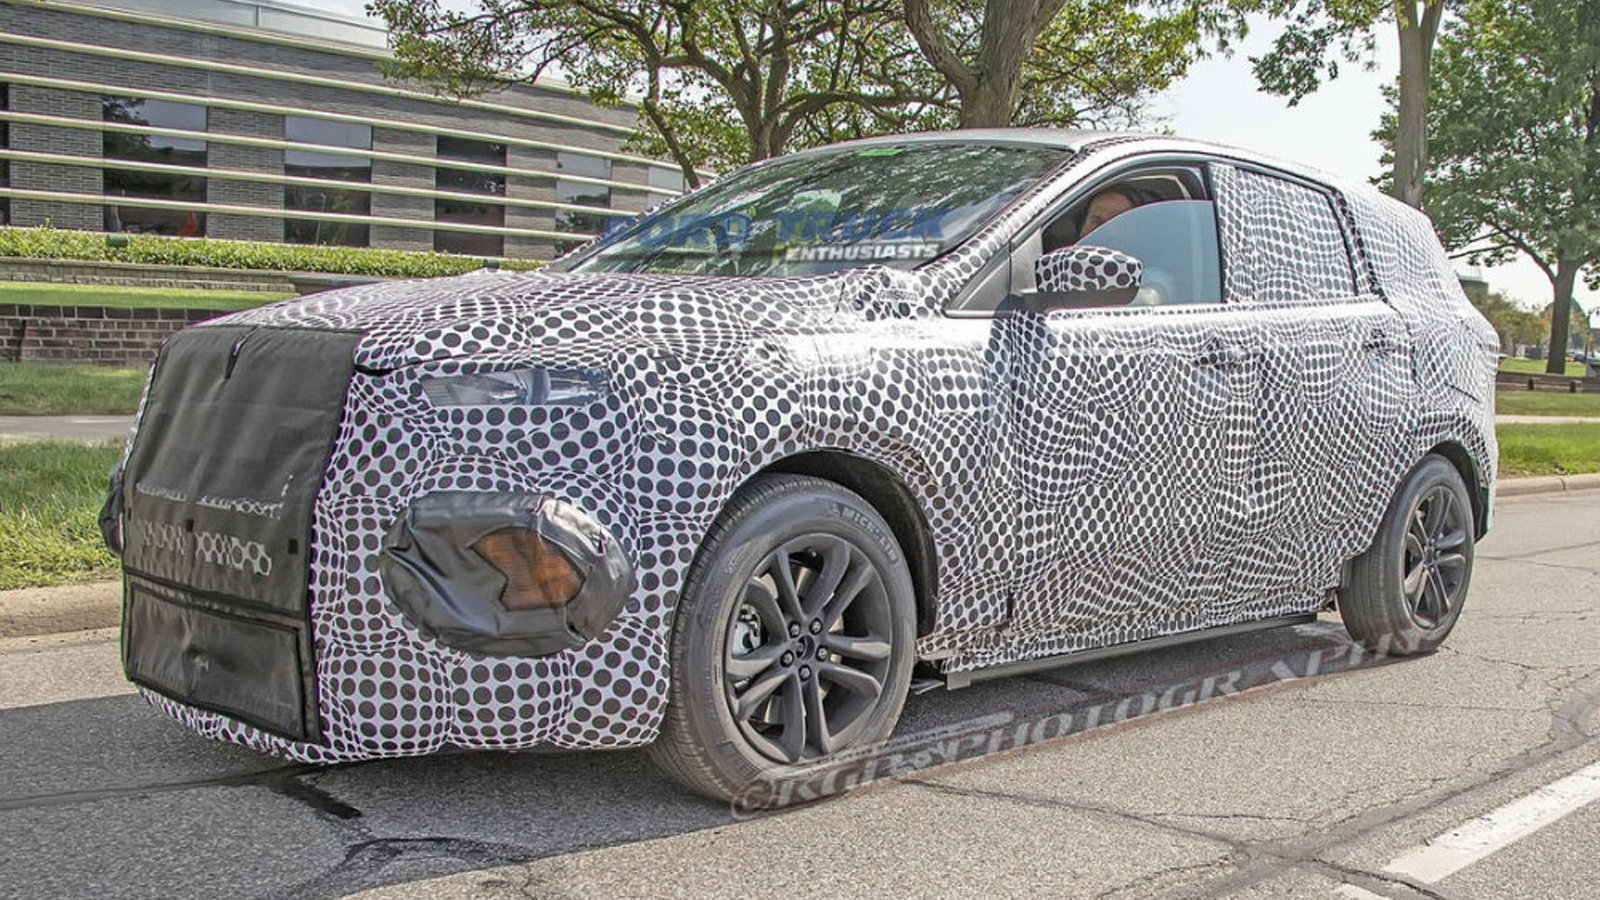 Another Look at Ford's New Mach 1 Electric